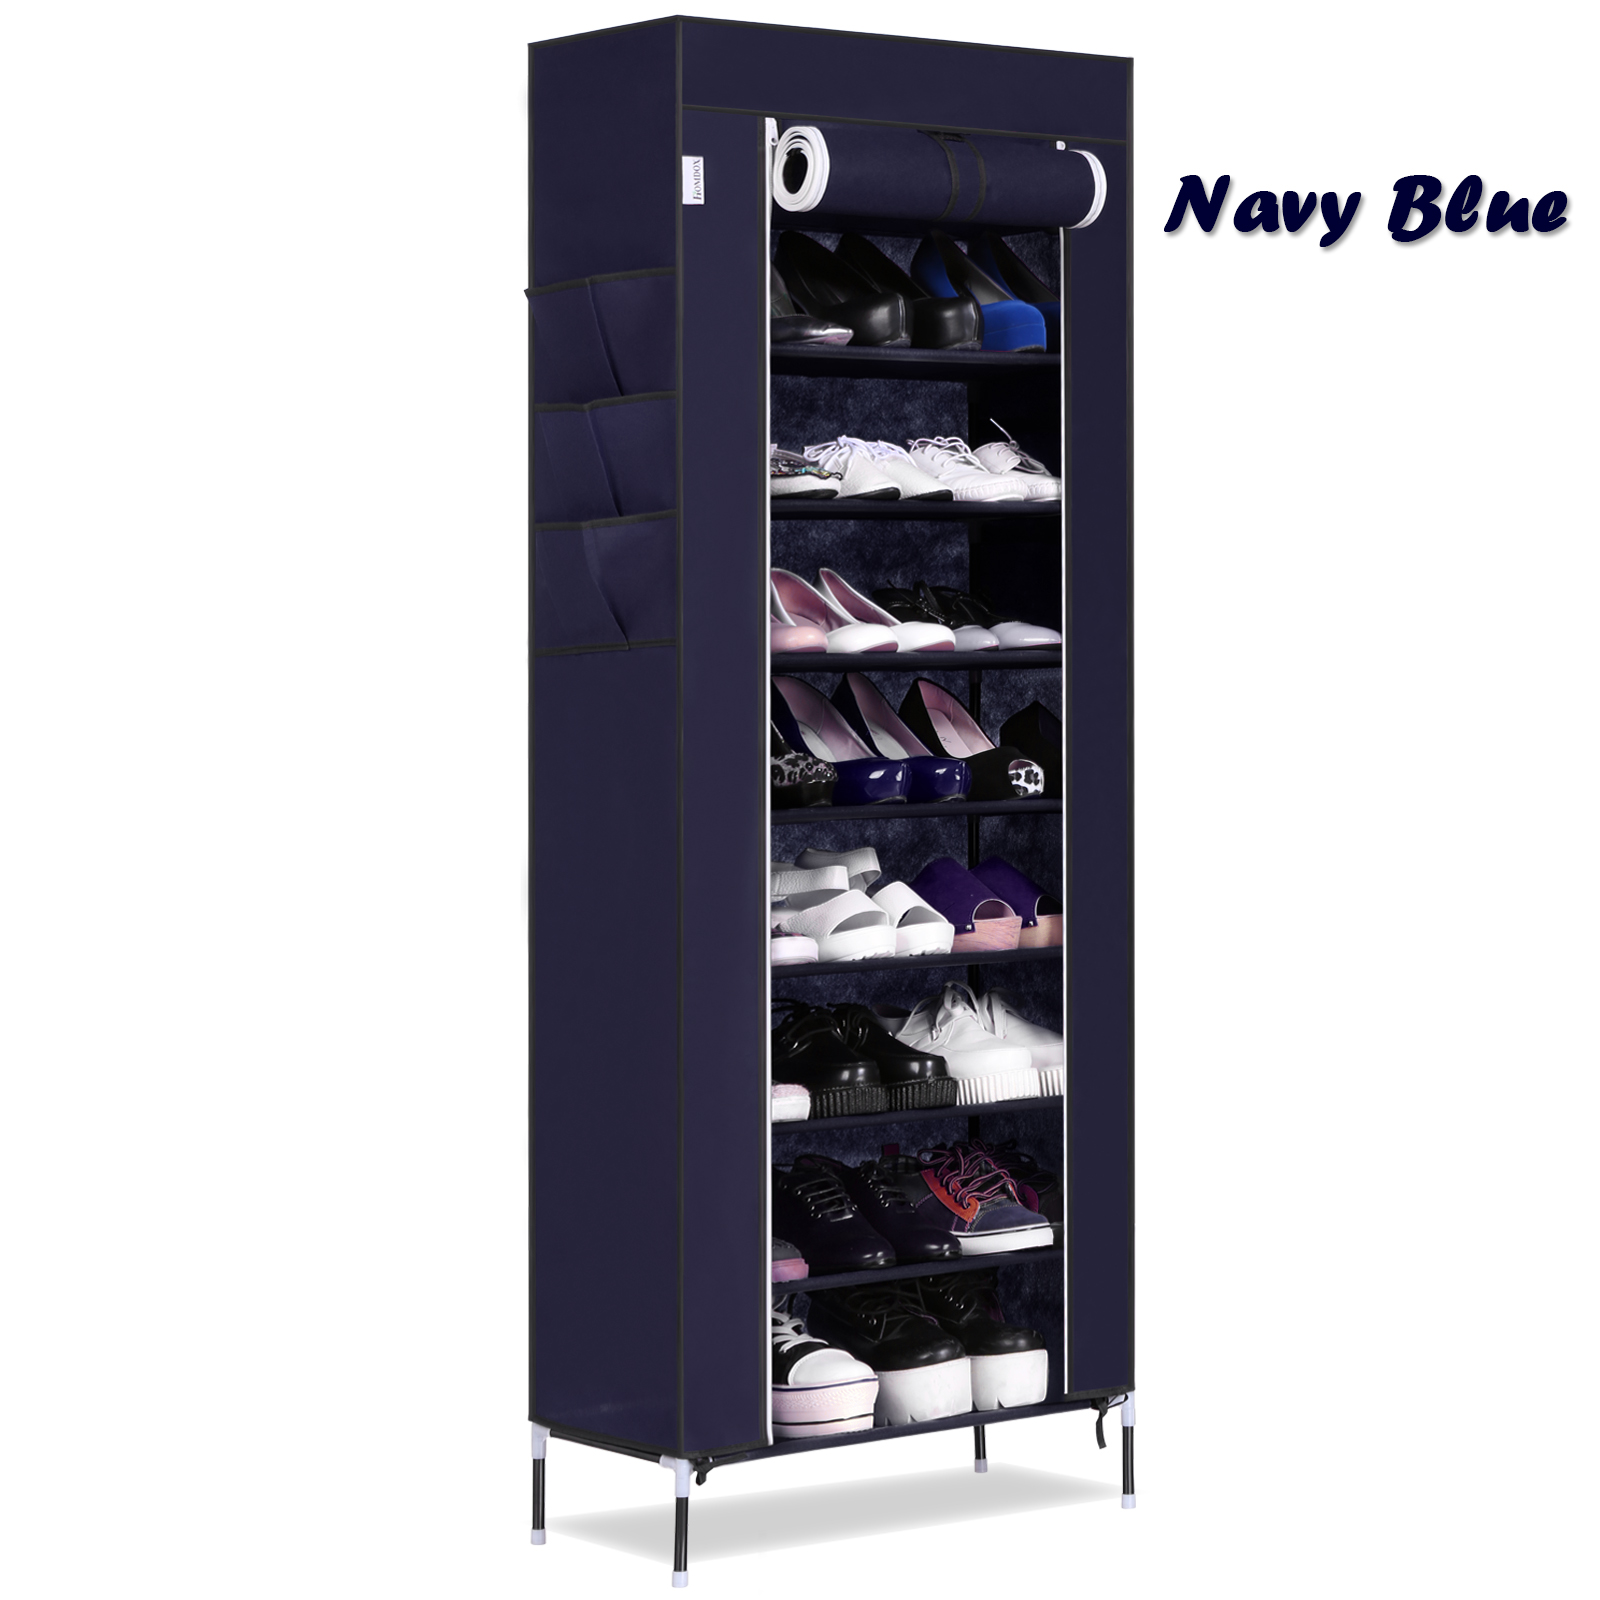 Homdox Shoe Cabinet Shoes Racks Storage Large Capacity Home Furniture Diy  Simple Portable Shoe Rack Organizer N20* In Shoe Cabinets From Furniture On  ...